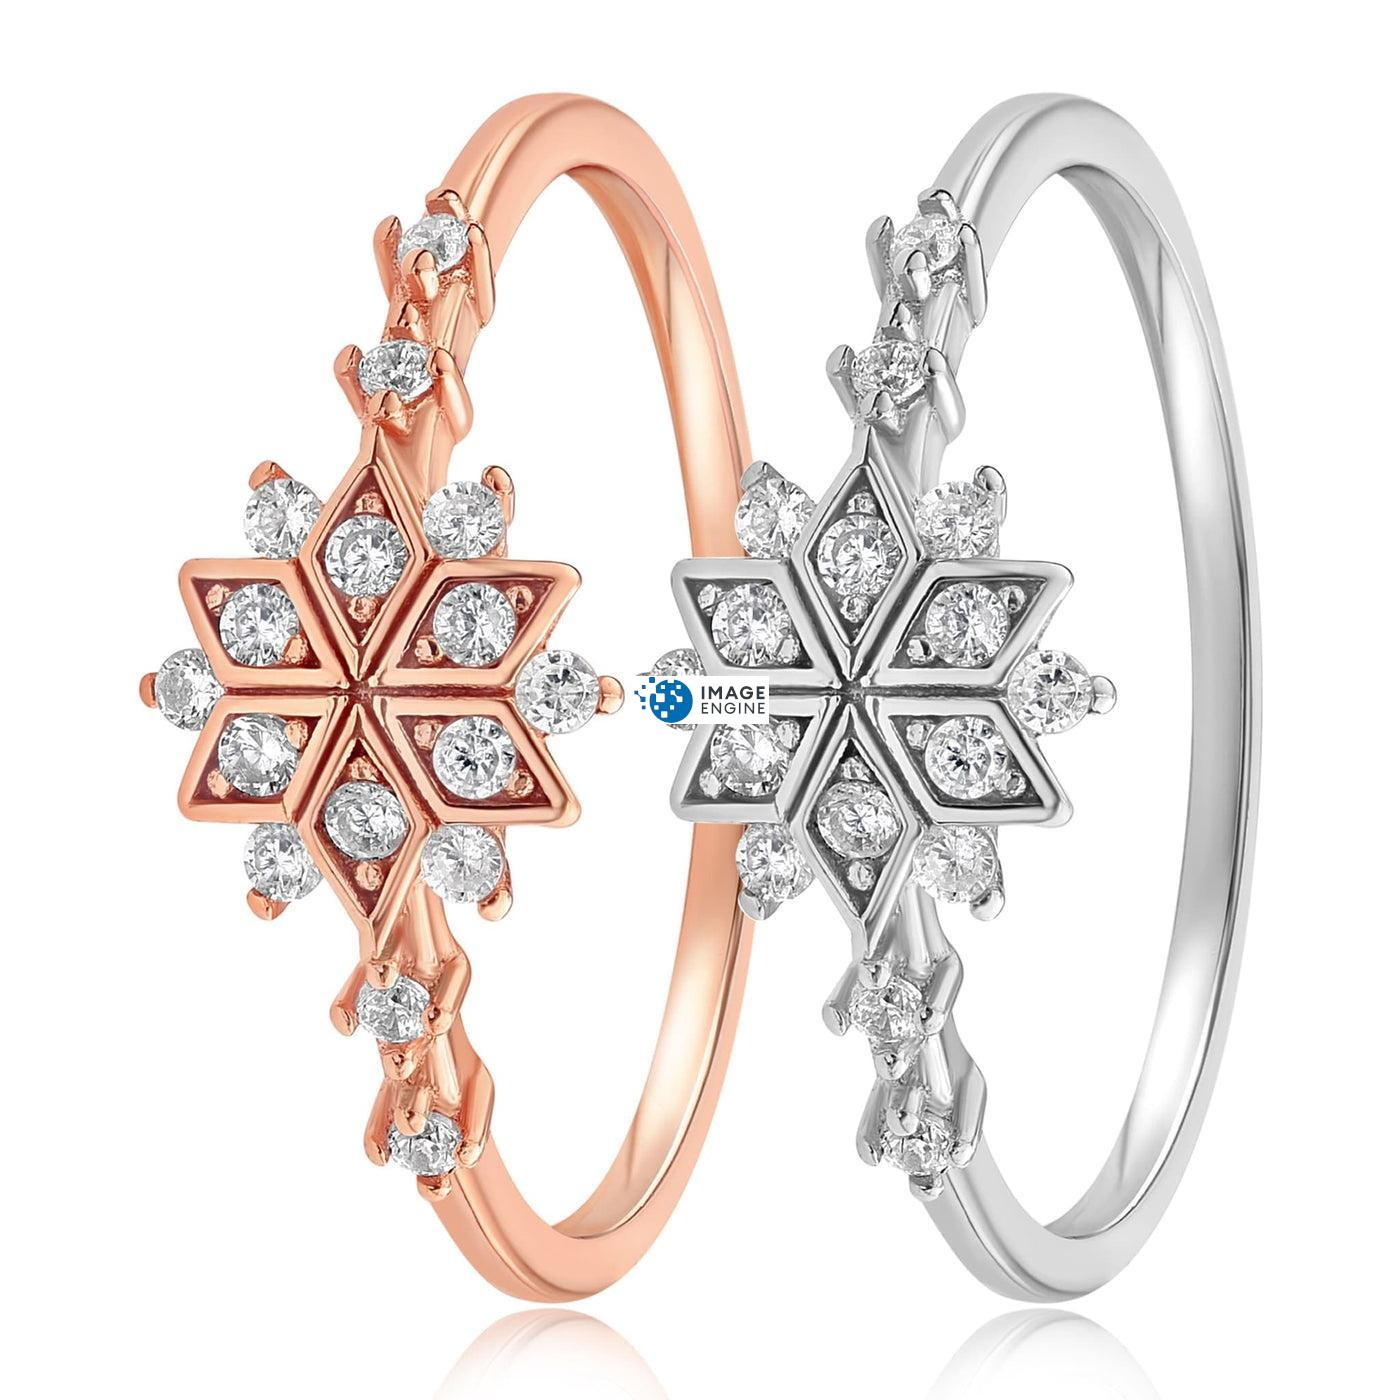 Sophia Snowflake Ring - Side by Side - 925 Sterling Silver and 18K Rose Gold Vermeil